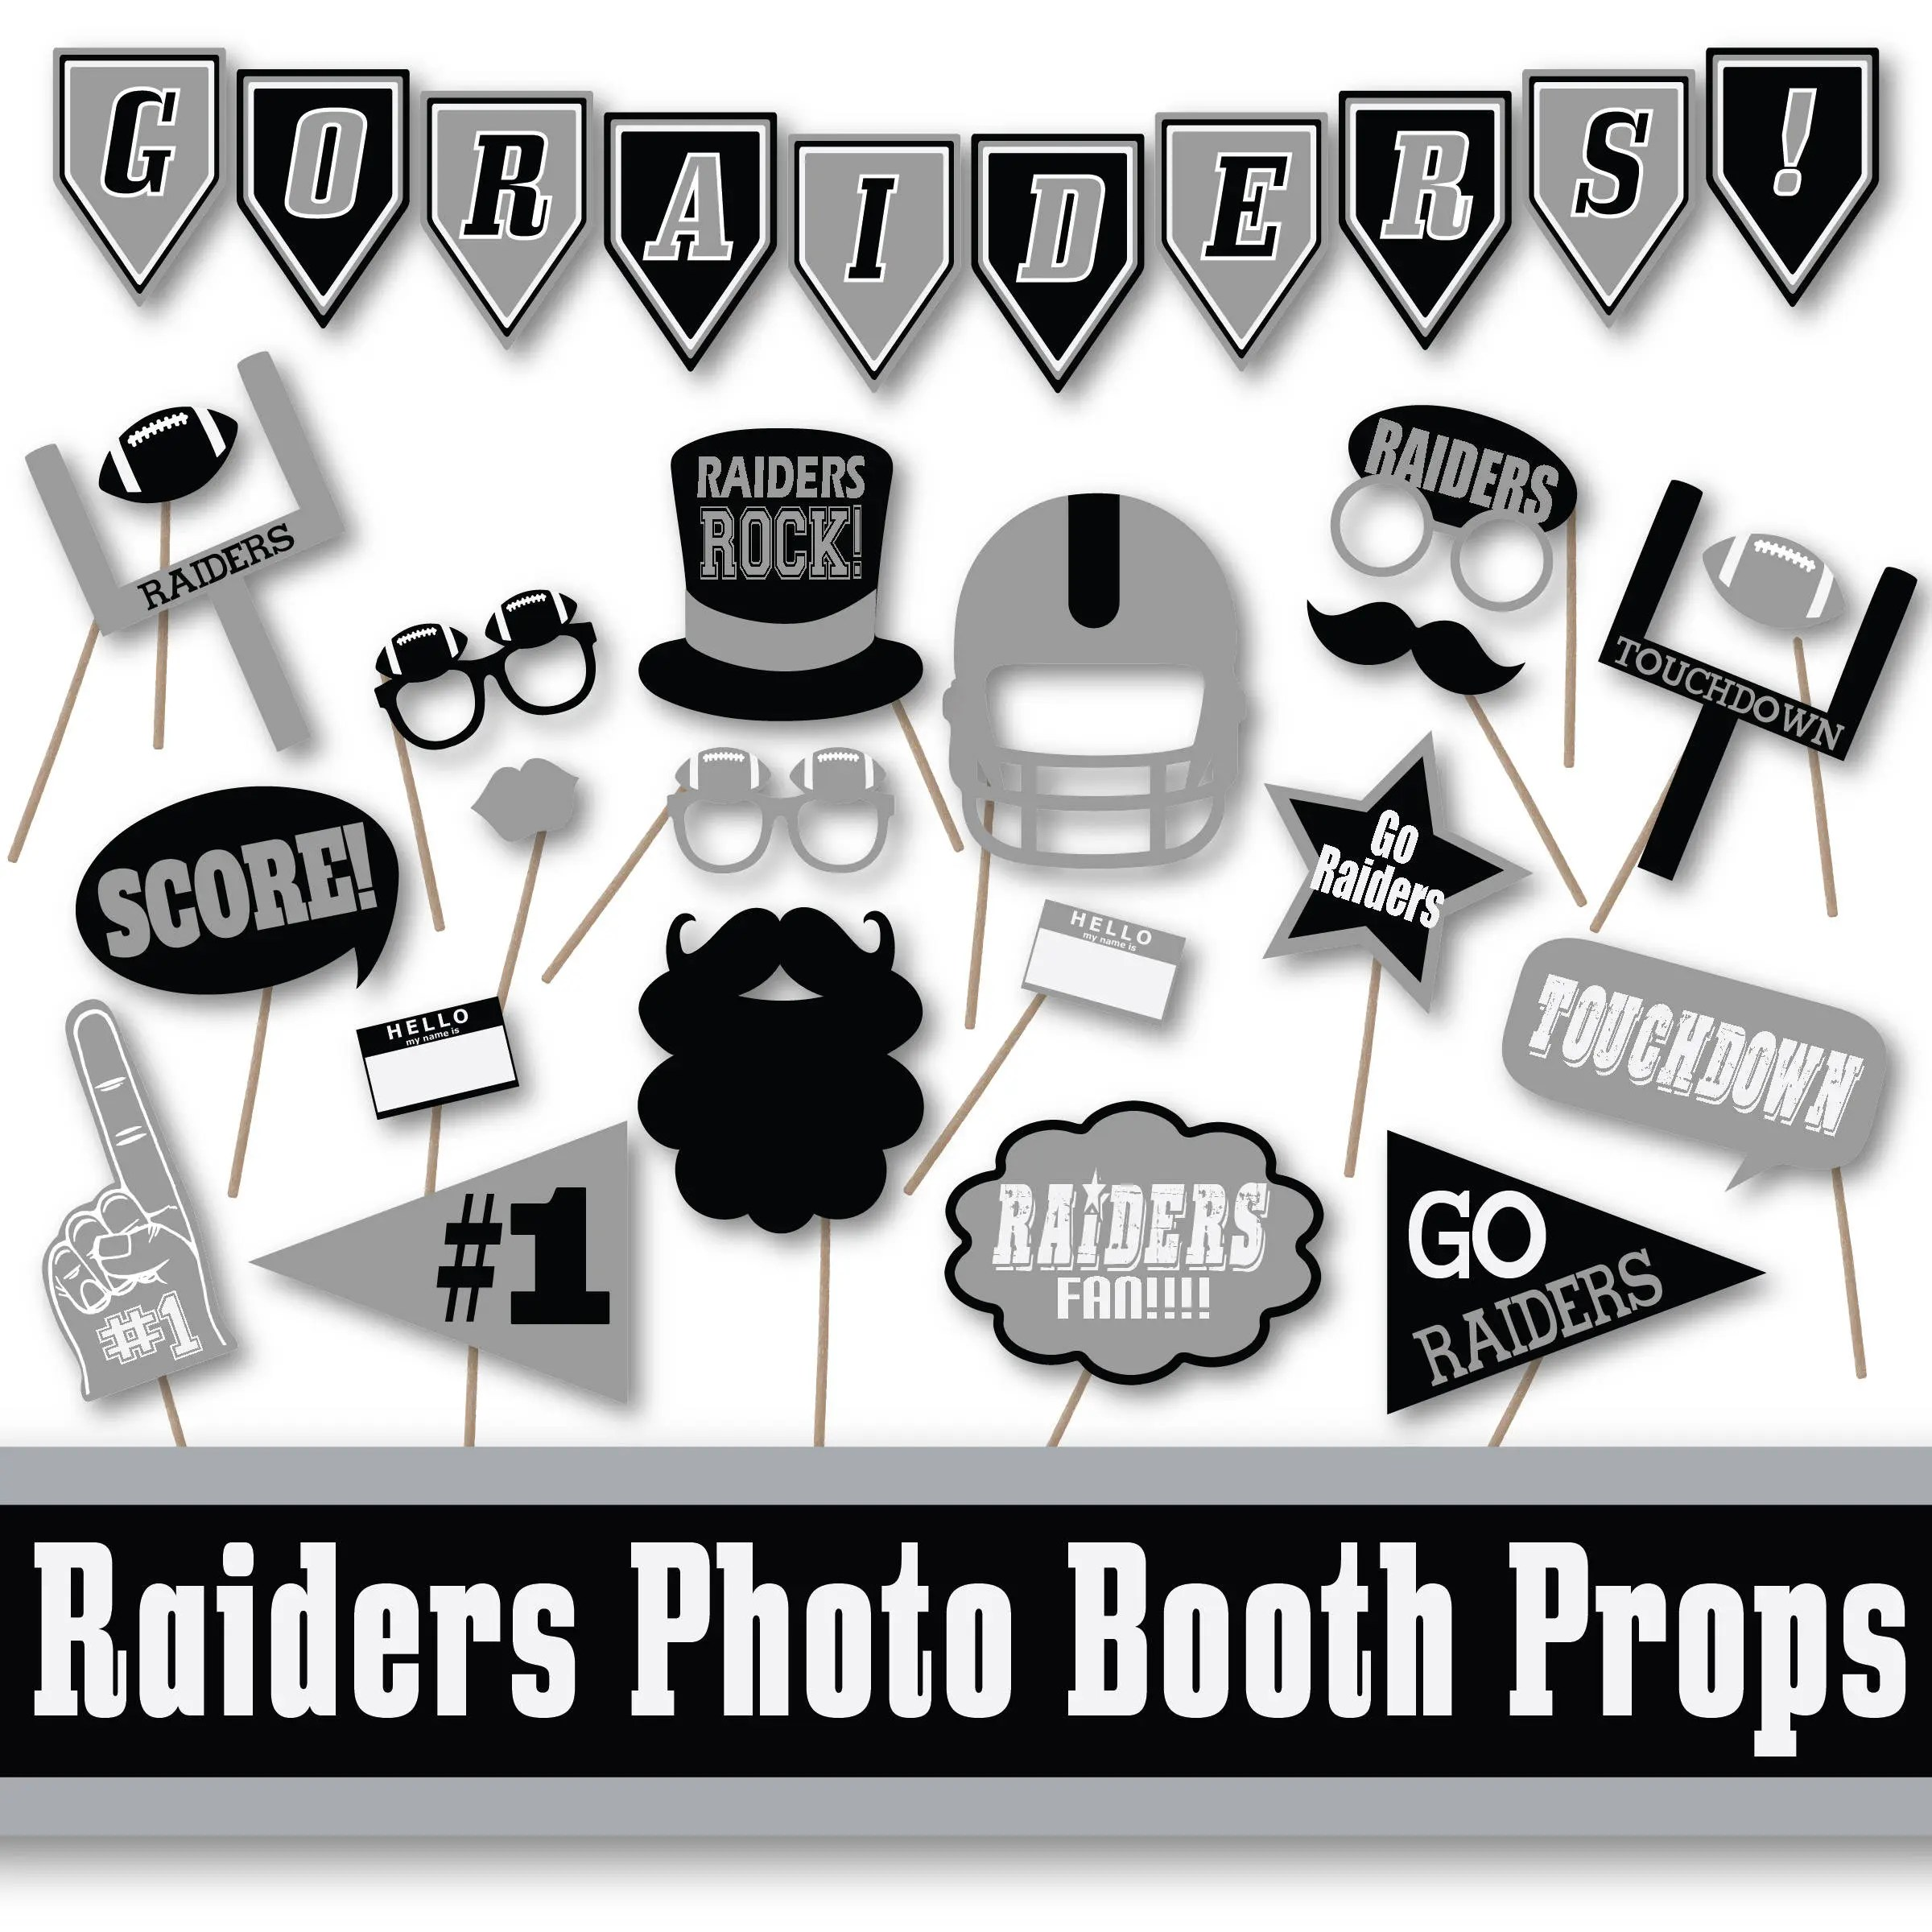 Raiders Football Photo Booth Props And Party Decorations